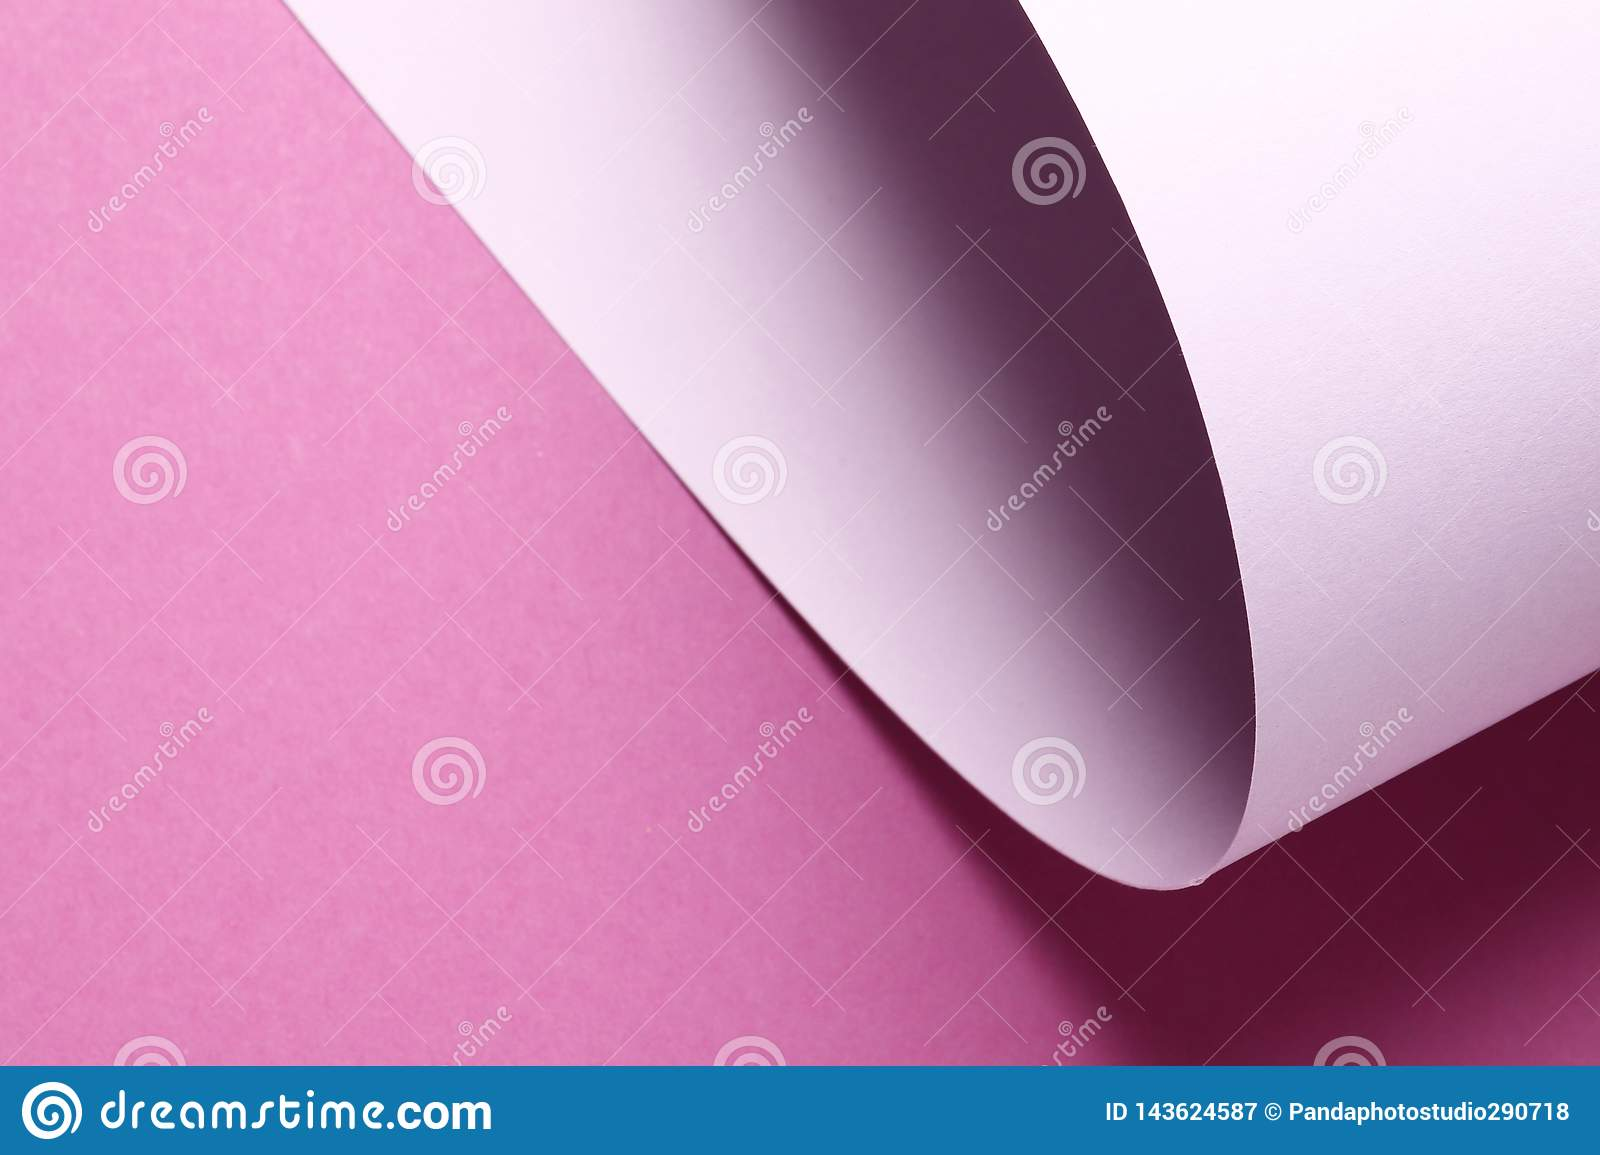 Bright purple abstract paper background